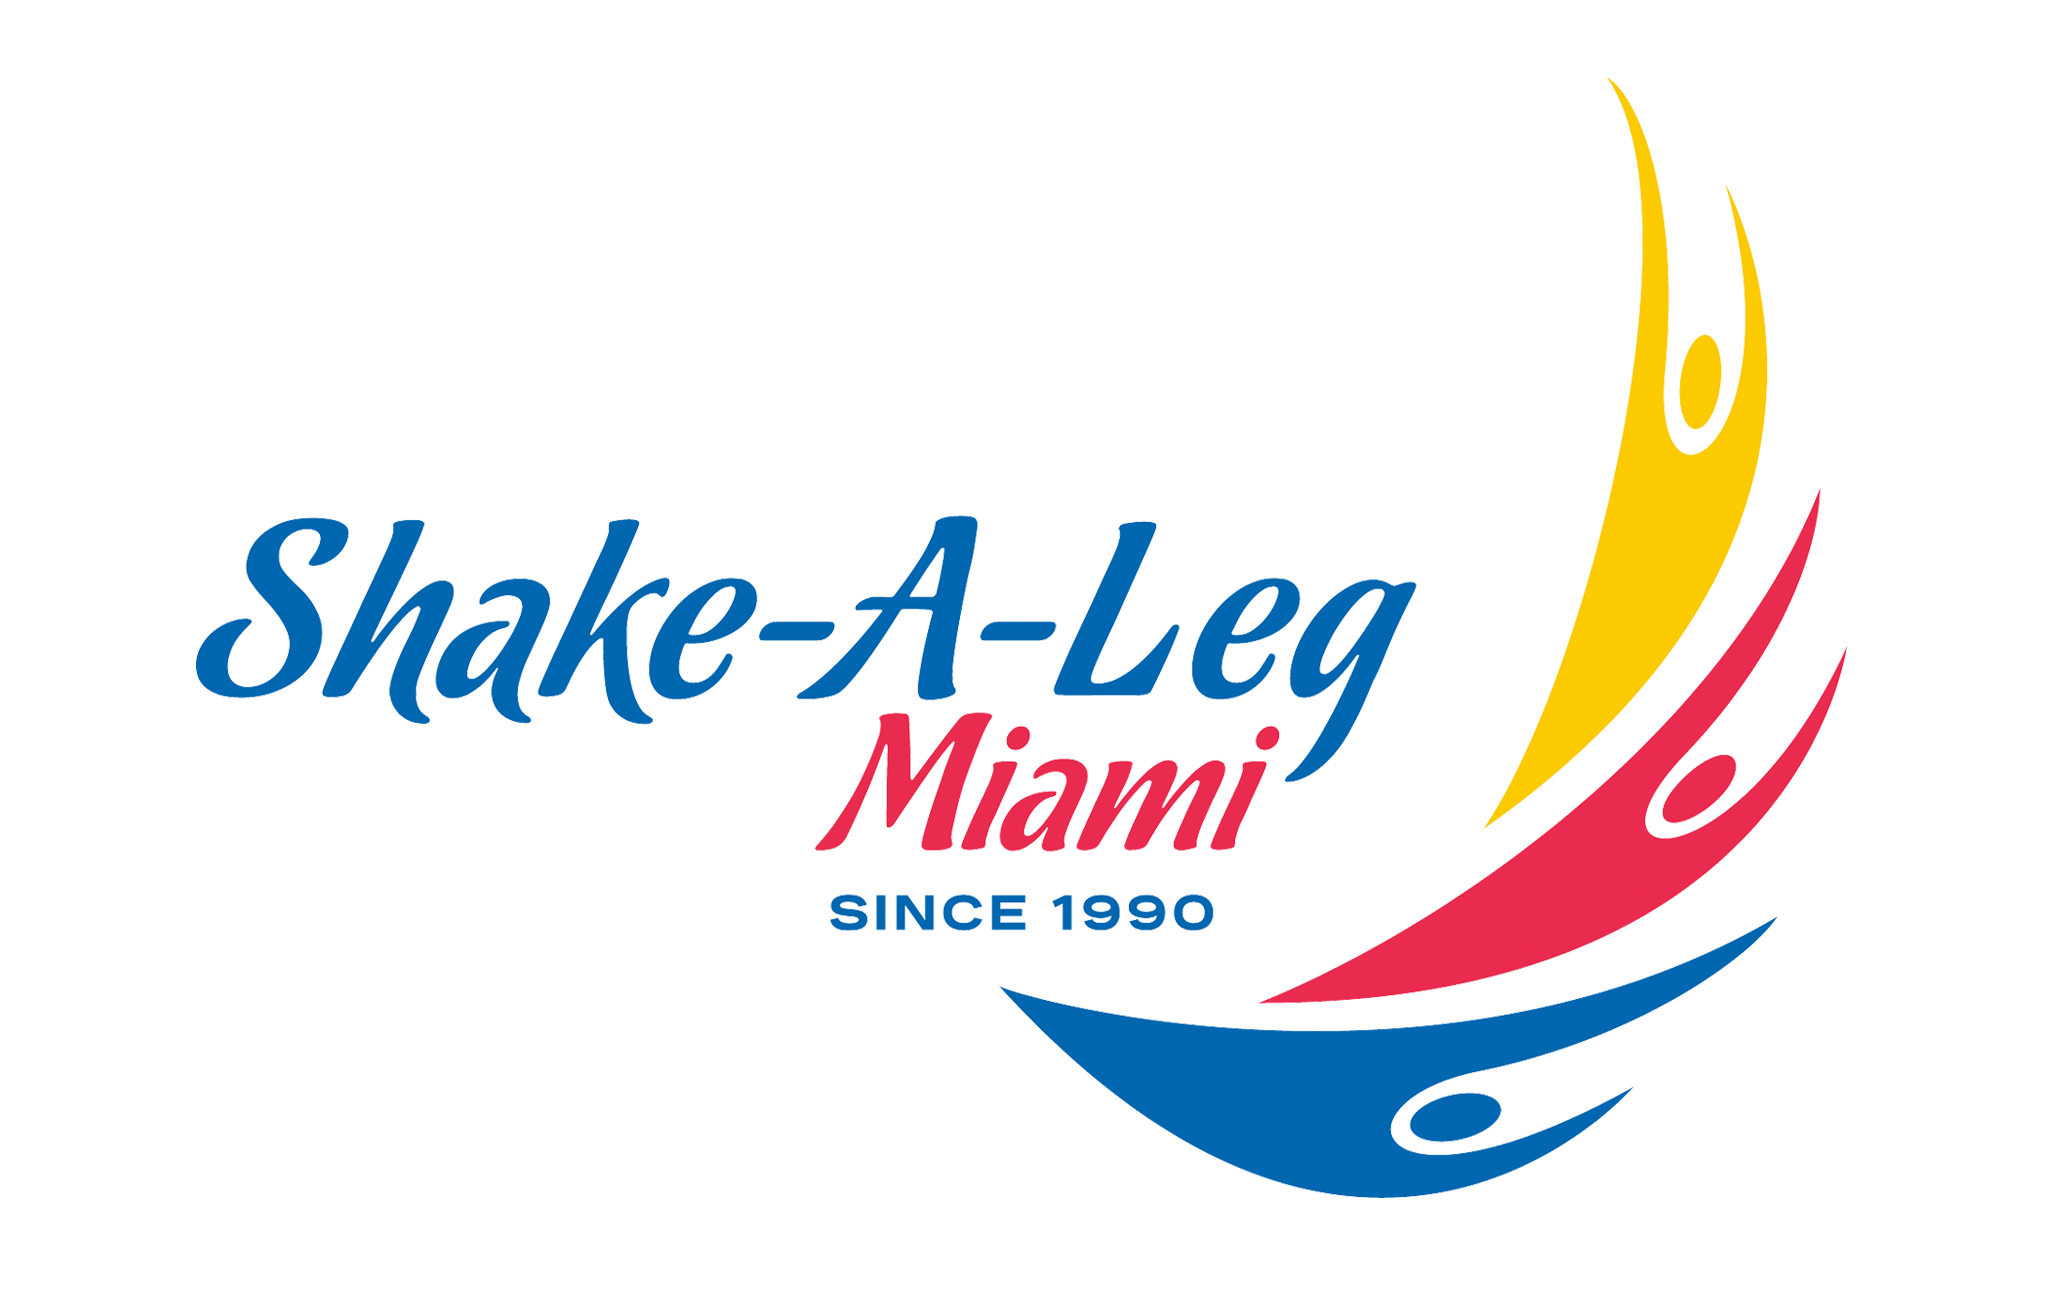 photo of Shake-A-Leg Miami logo